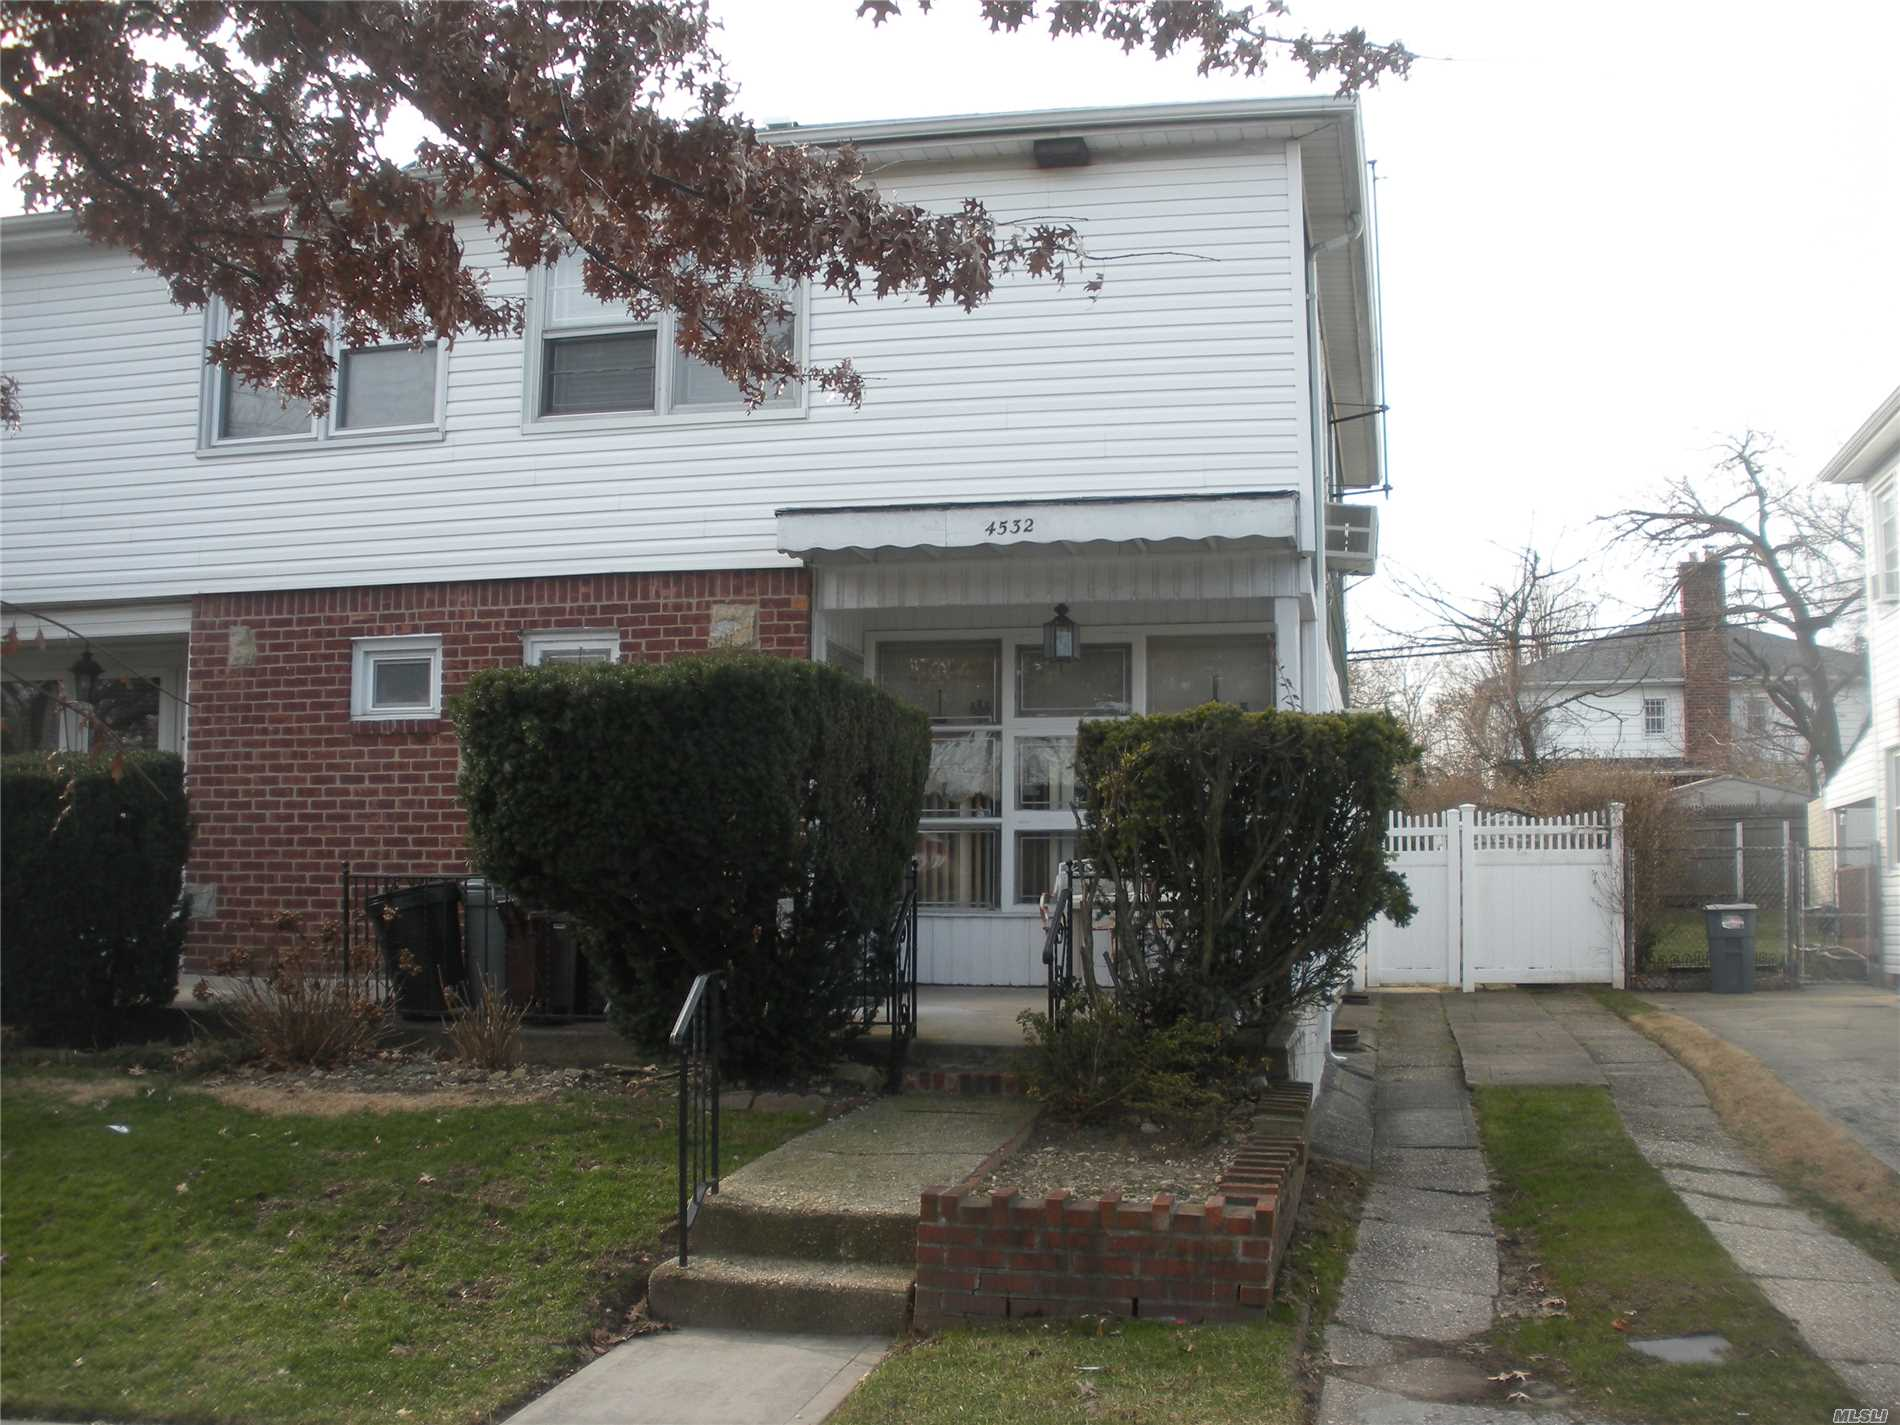 Semi Detached One Family: Living Room, Dining Room, Kitchen, 1.5 Bathrooms, Three Bedrooms, Finished Basement, Front Porch, Rear Patio And Private Parking. Very Close Proximity To Lirr. School District 26.